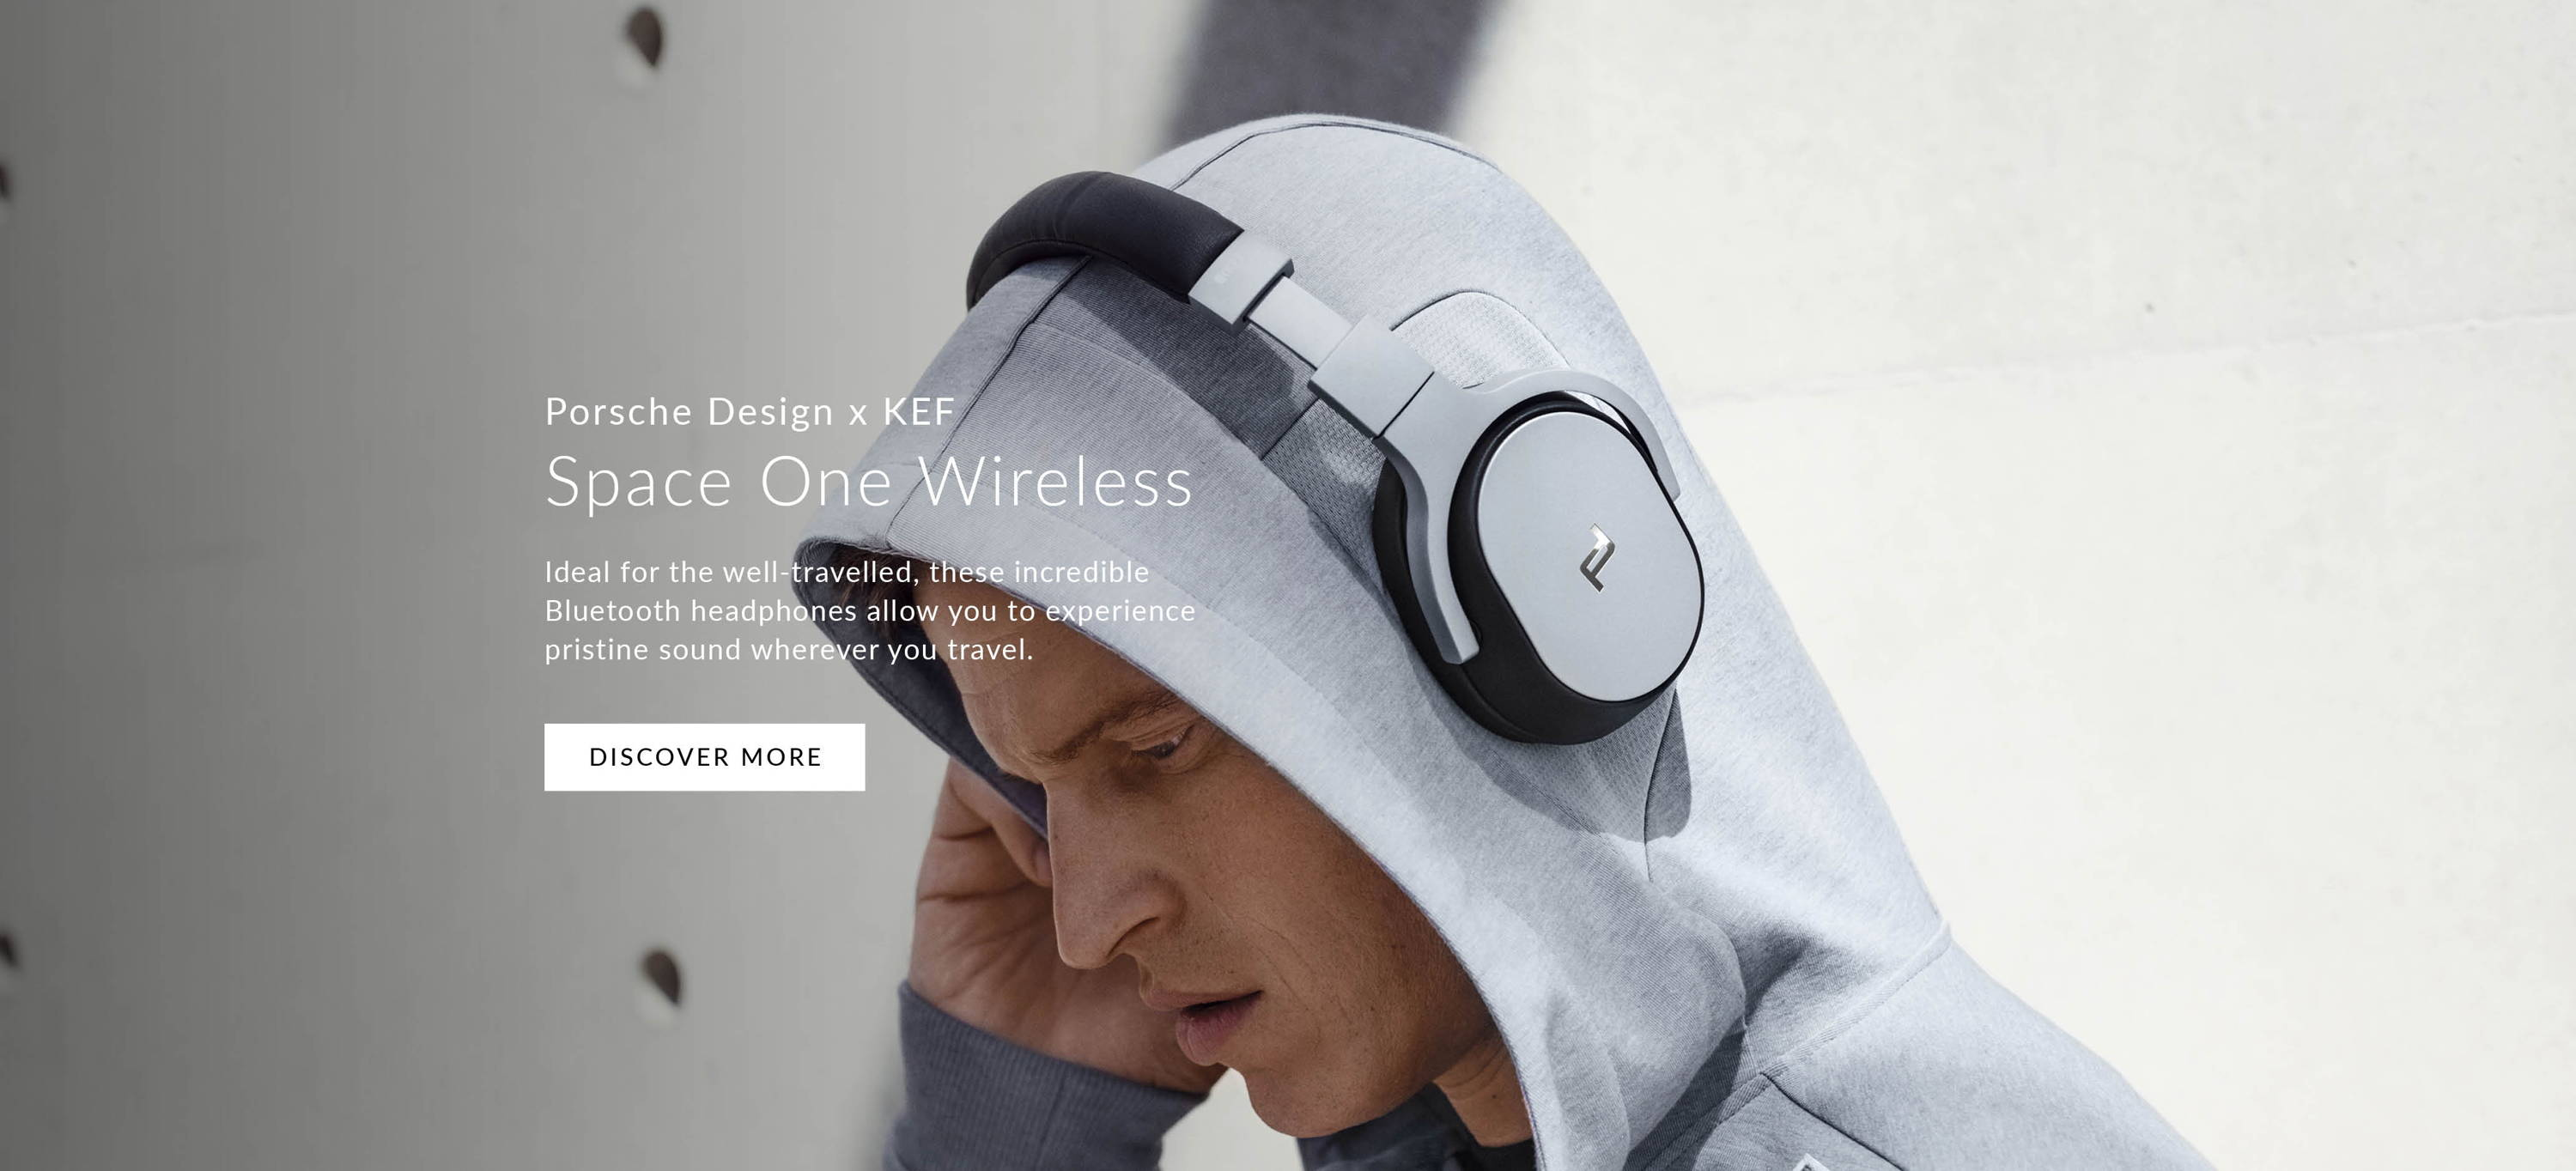 Porsche Design x KEF Space One Wireless